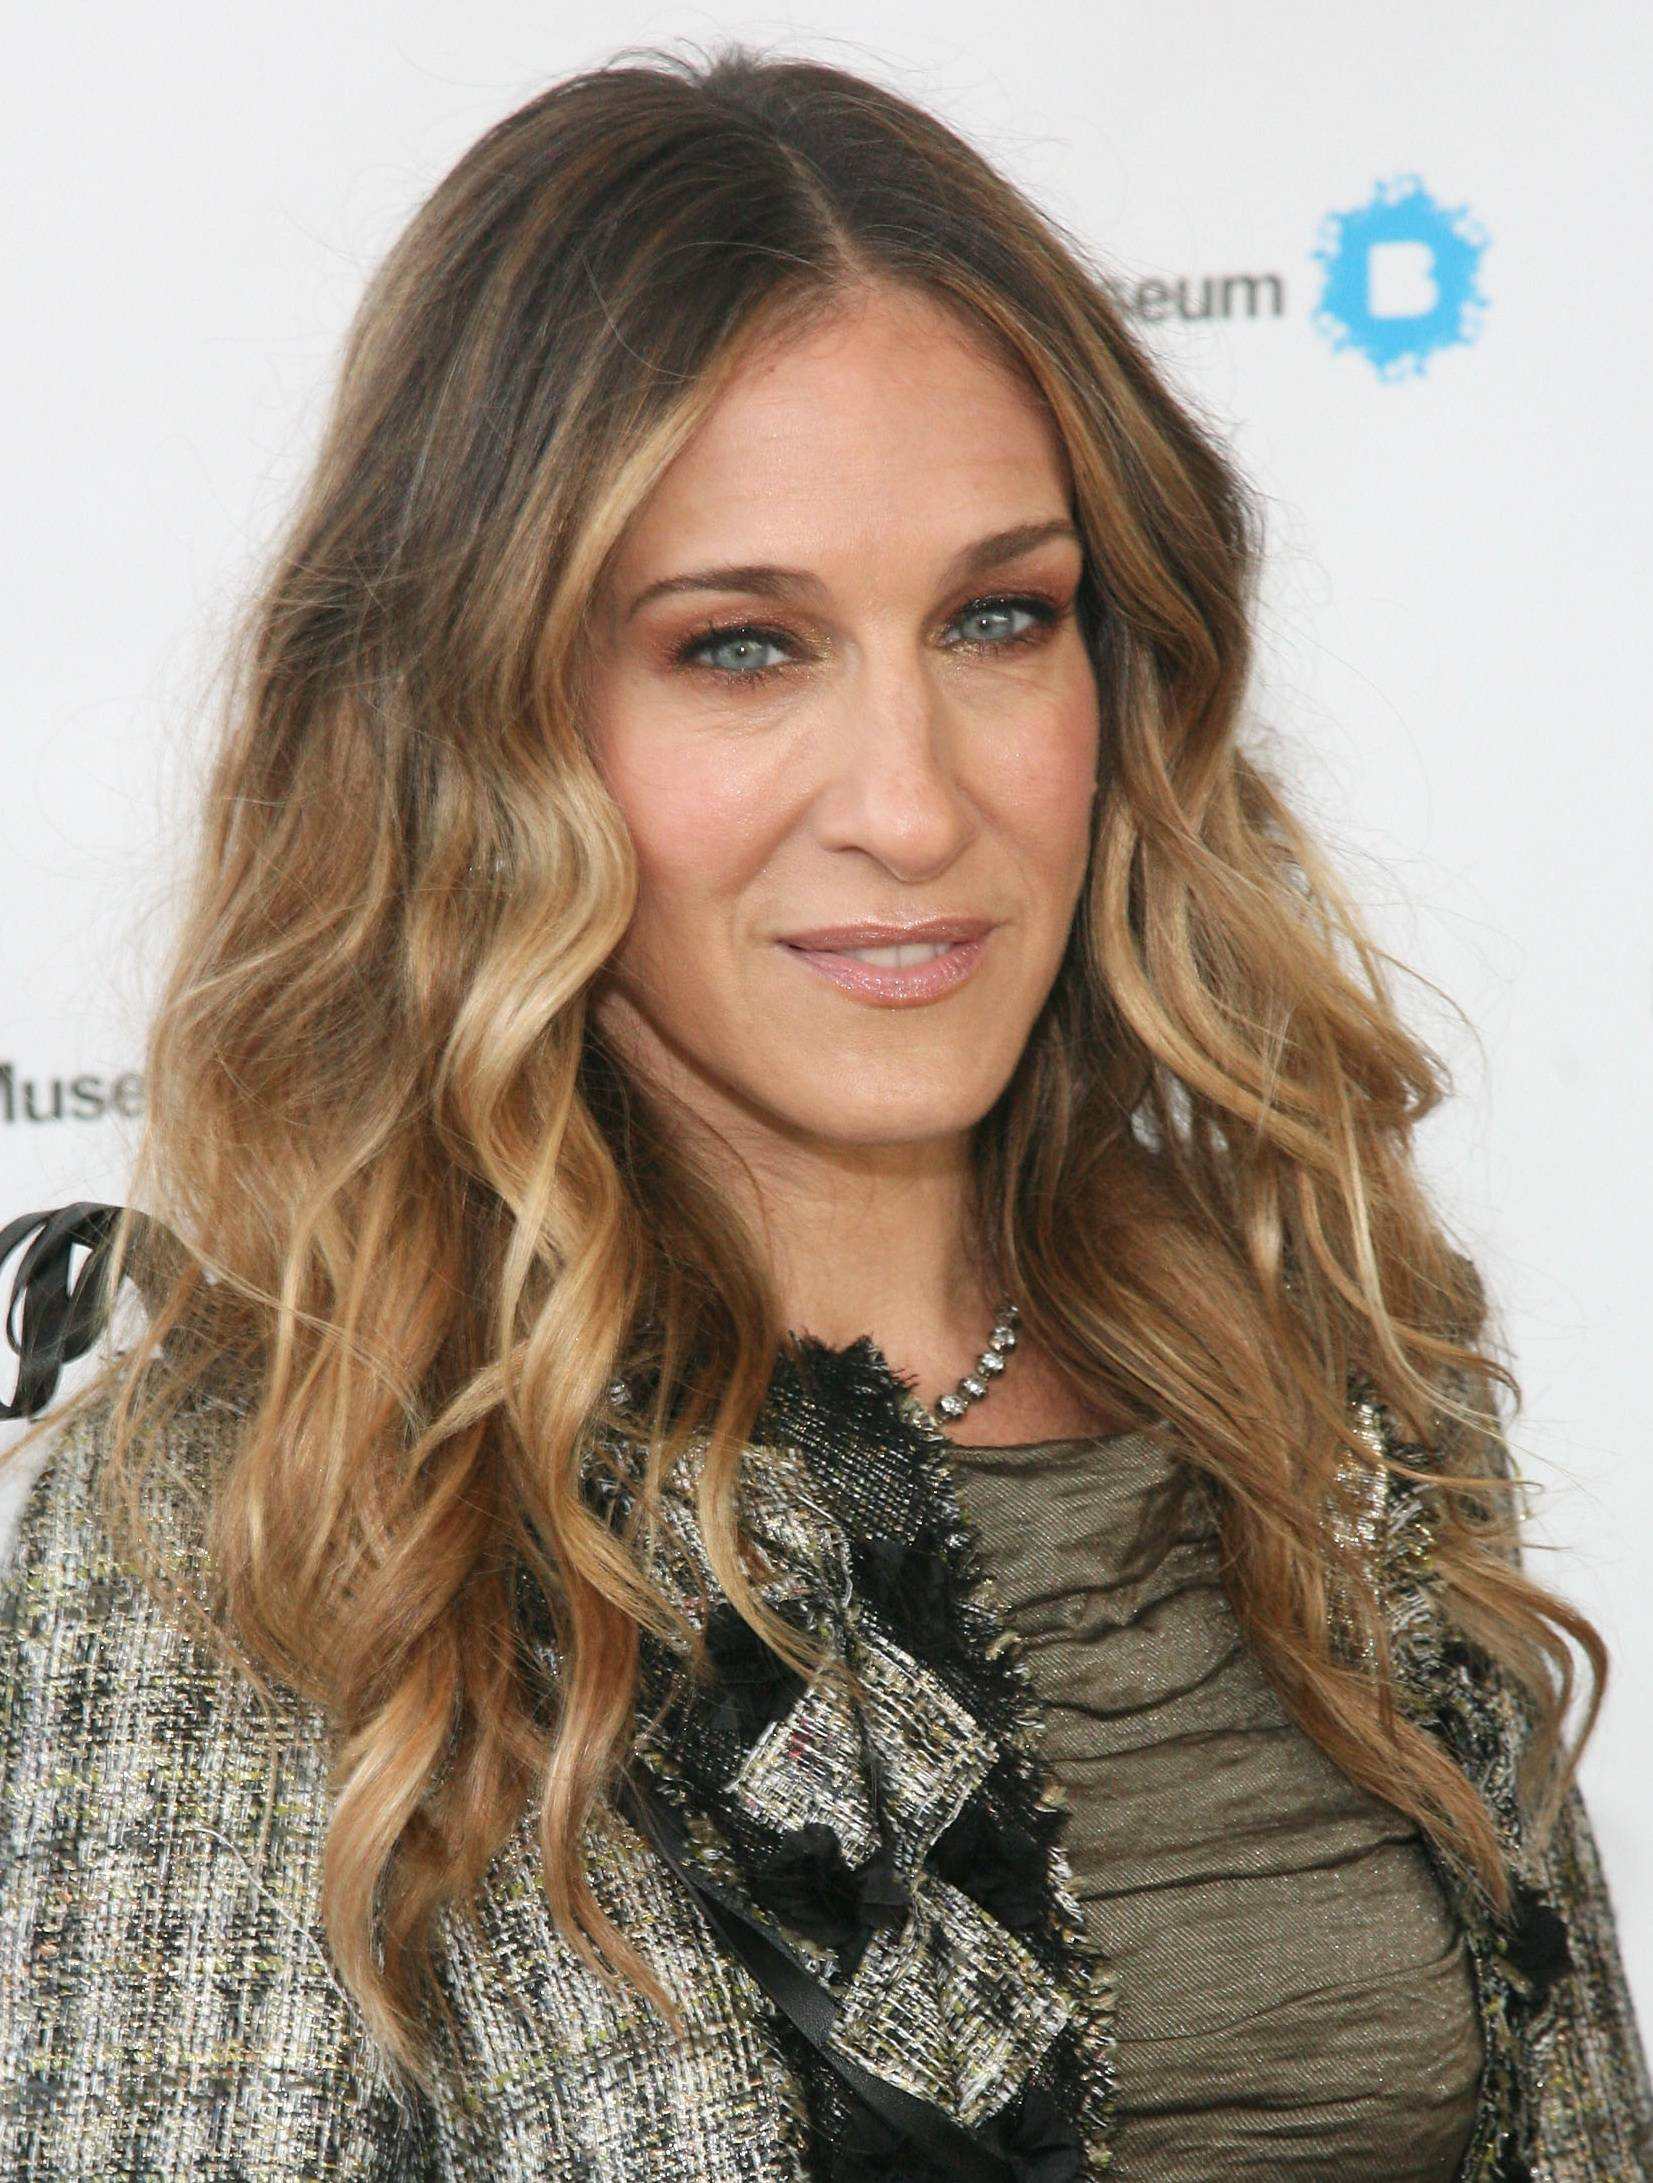 Best ideas about Ombre Hairstyles . Save or Pin Ombré Hairstyles How to the look Now.